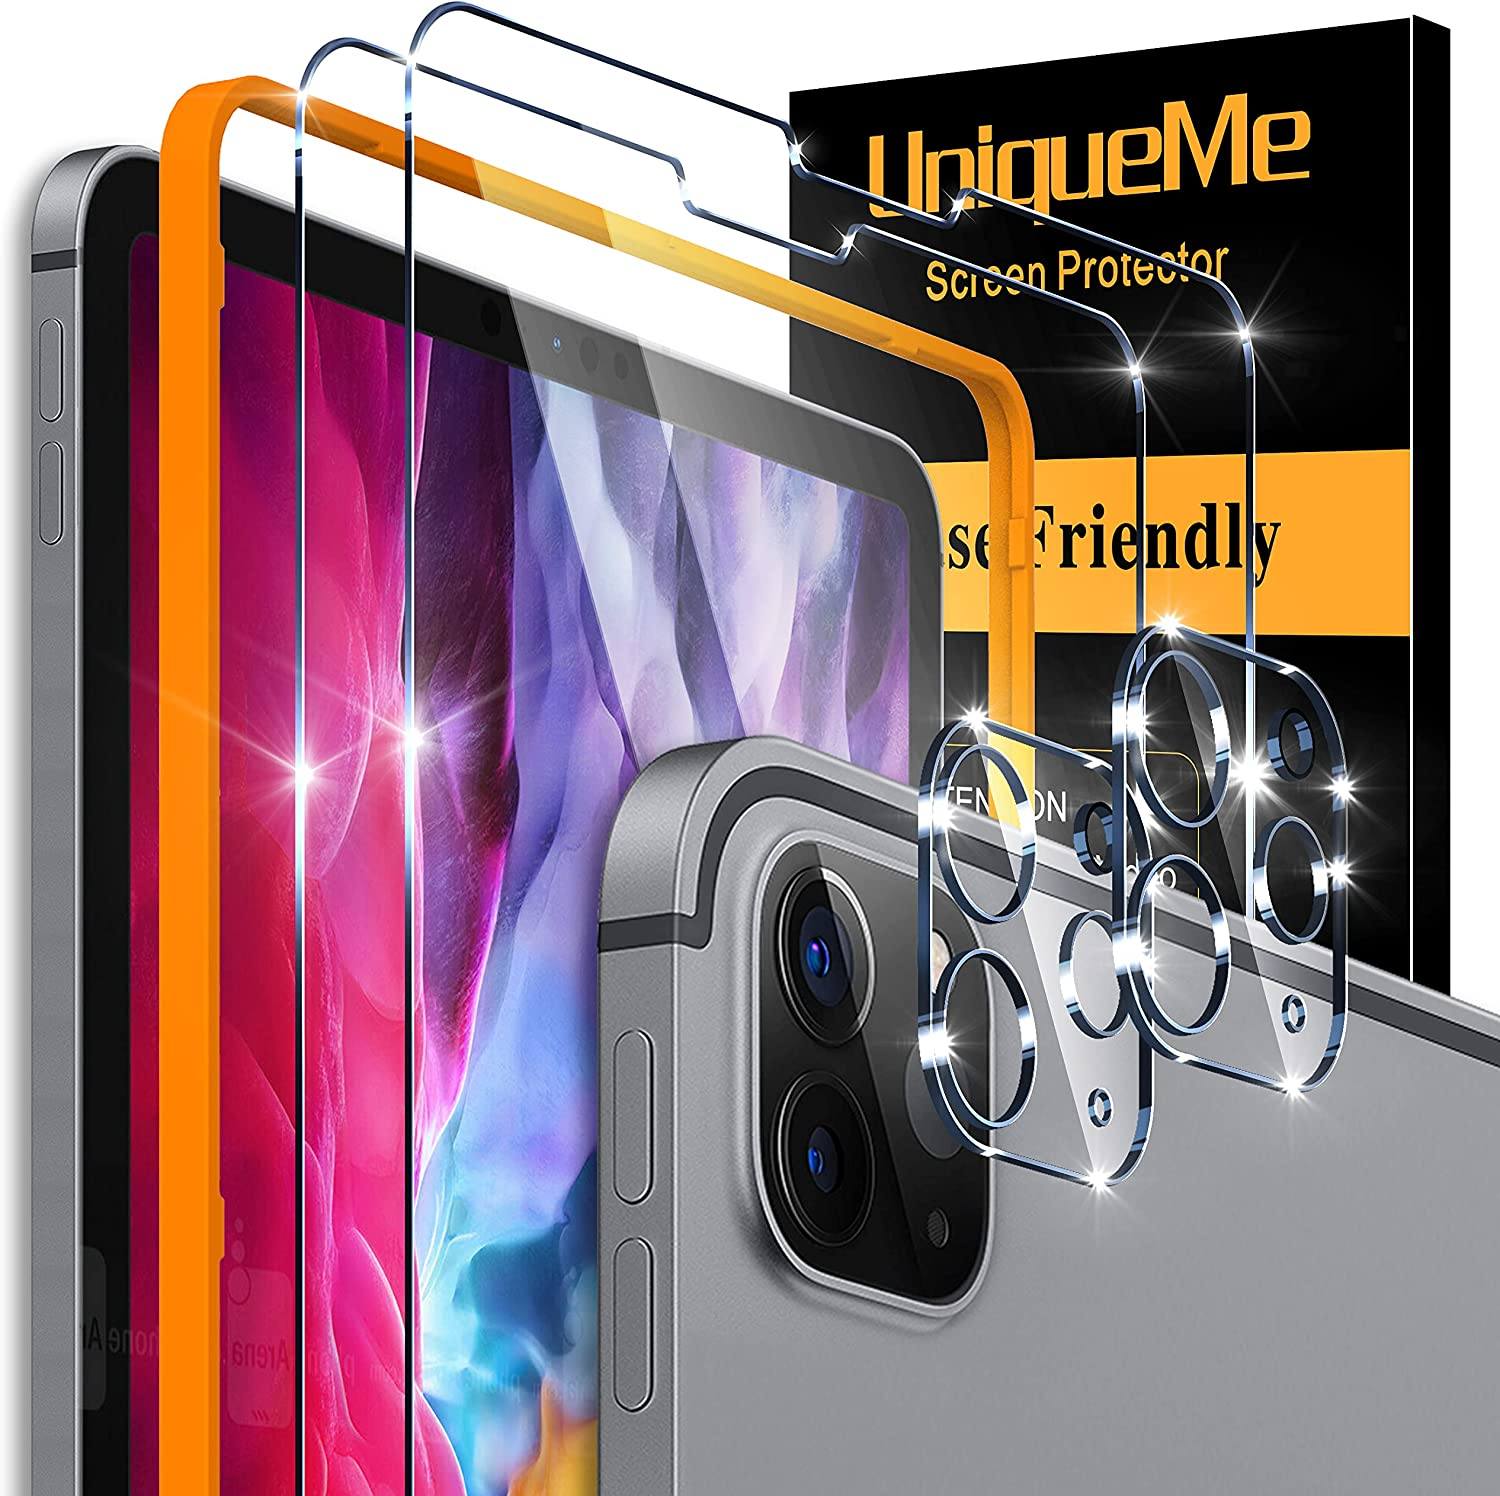 [2+2 Pack] UniqueMe Compatible with iPad Pro 12.9 2020 and 2021 (4th / 5th gen), Tempered Glass Screen Protector and Camera Lens Protector,Compatible with Face ID & Apple Pencil, [Alignment Frame]